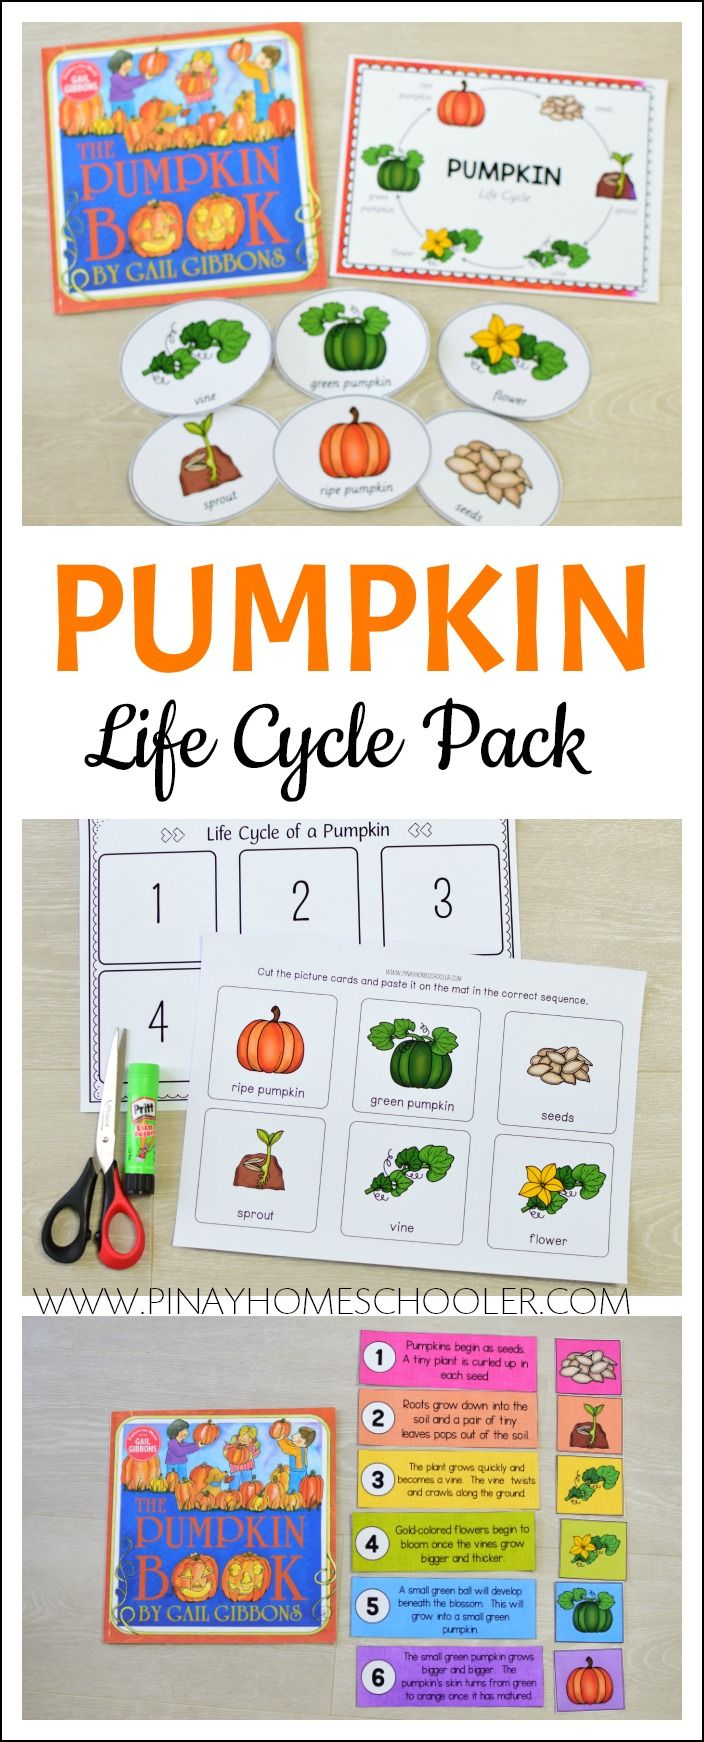 Life Cycle Of A Pumpkin Learning Pack Pumpkin Life Cycle Fall Preschool Activities Thanksgiving Activities For Kids [ 1742 x 704 Pixel ]